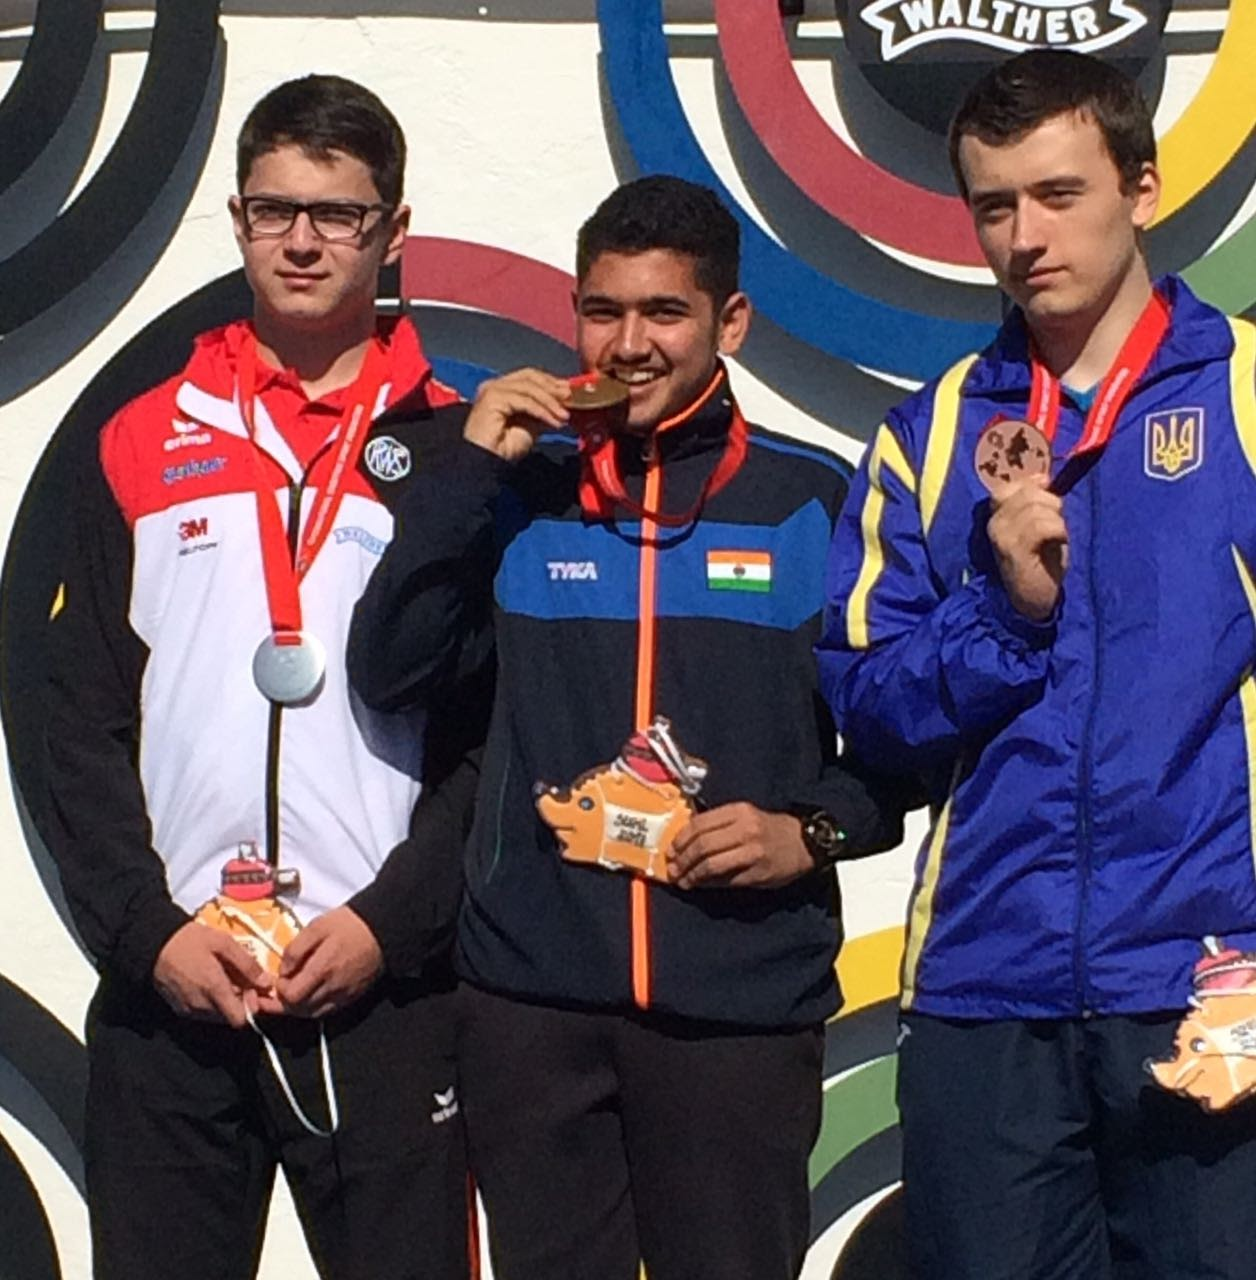 Anish with his gold medal at the ISSF Junior World Cup. Image Credit: Anish Bhanwala